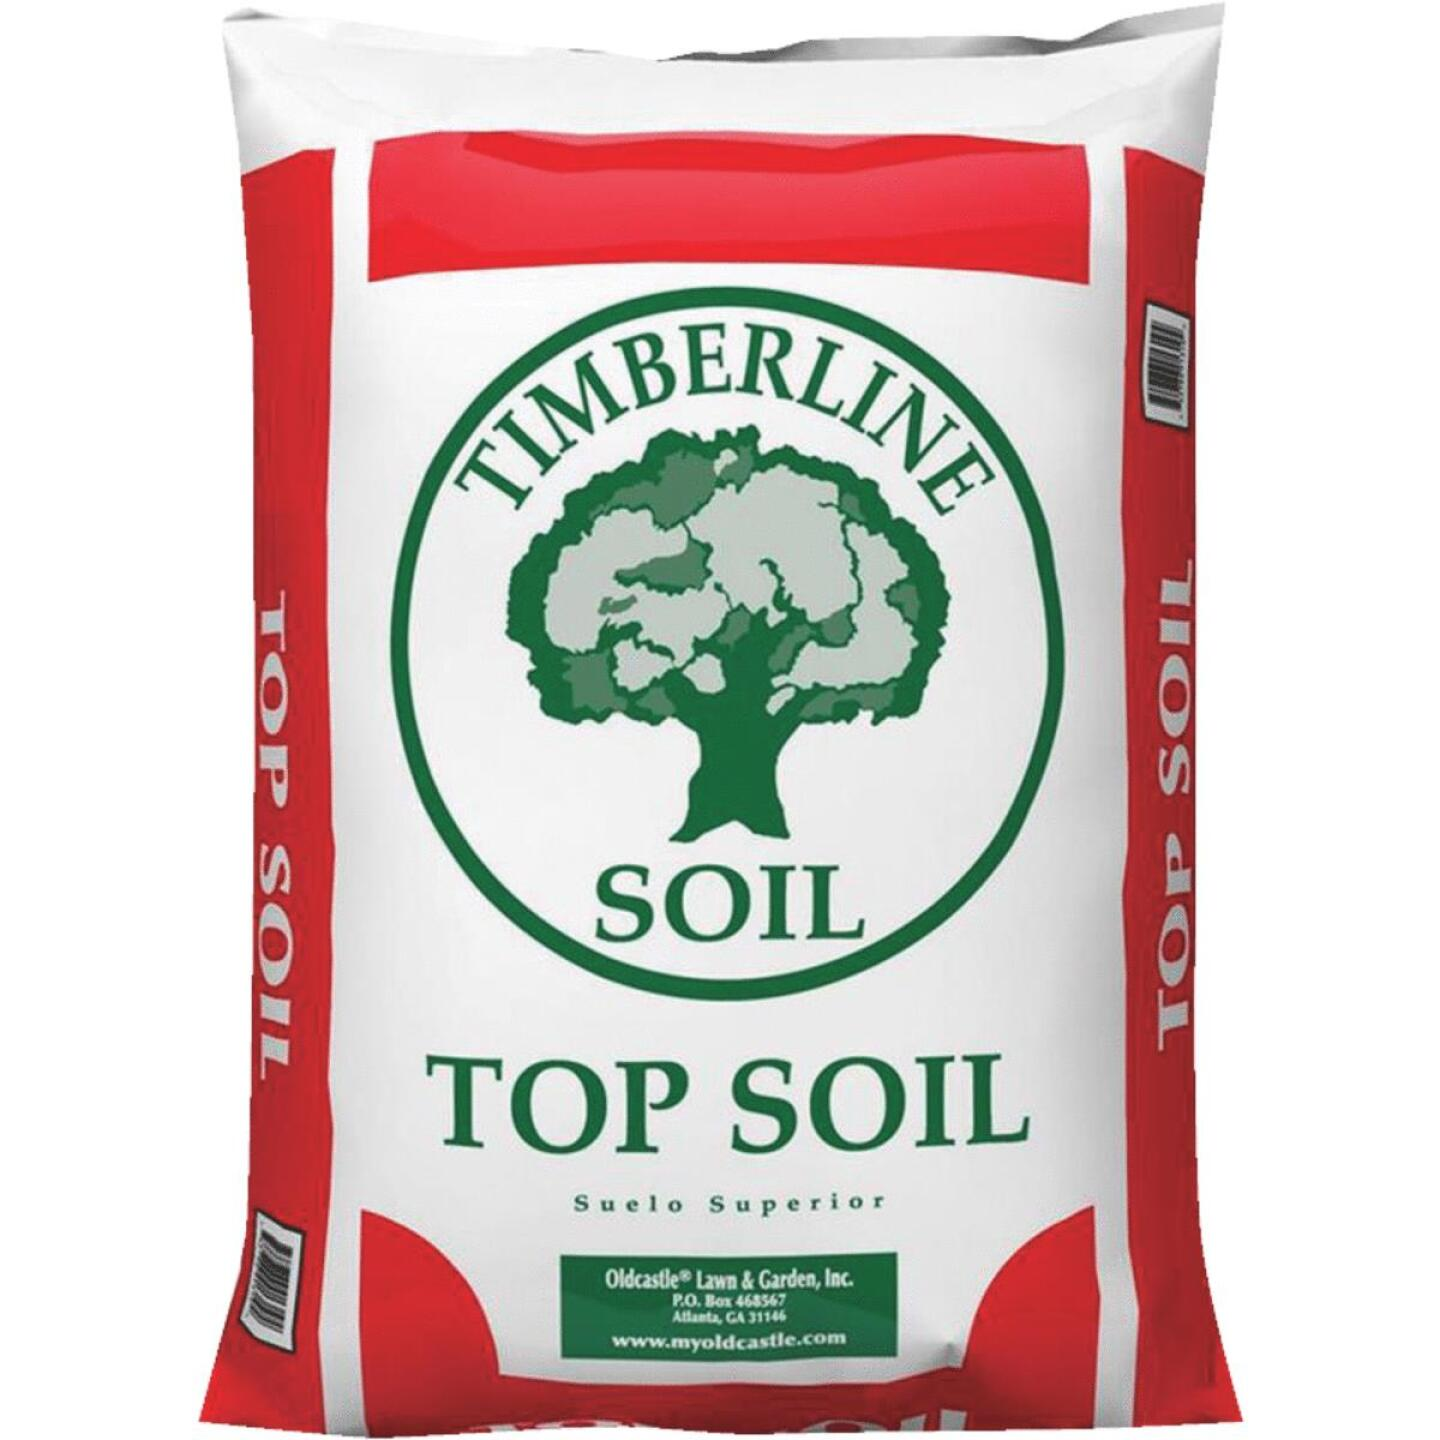 Timberline 1 Cu. Ft. 34 Lb. All-Purpose Top Soil Image 1